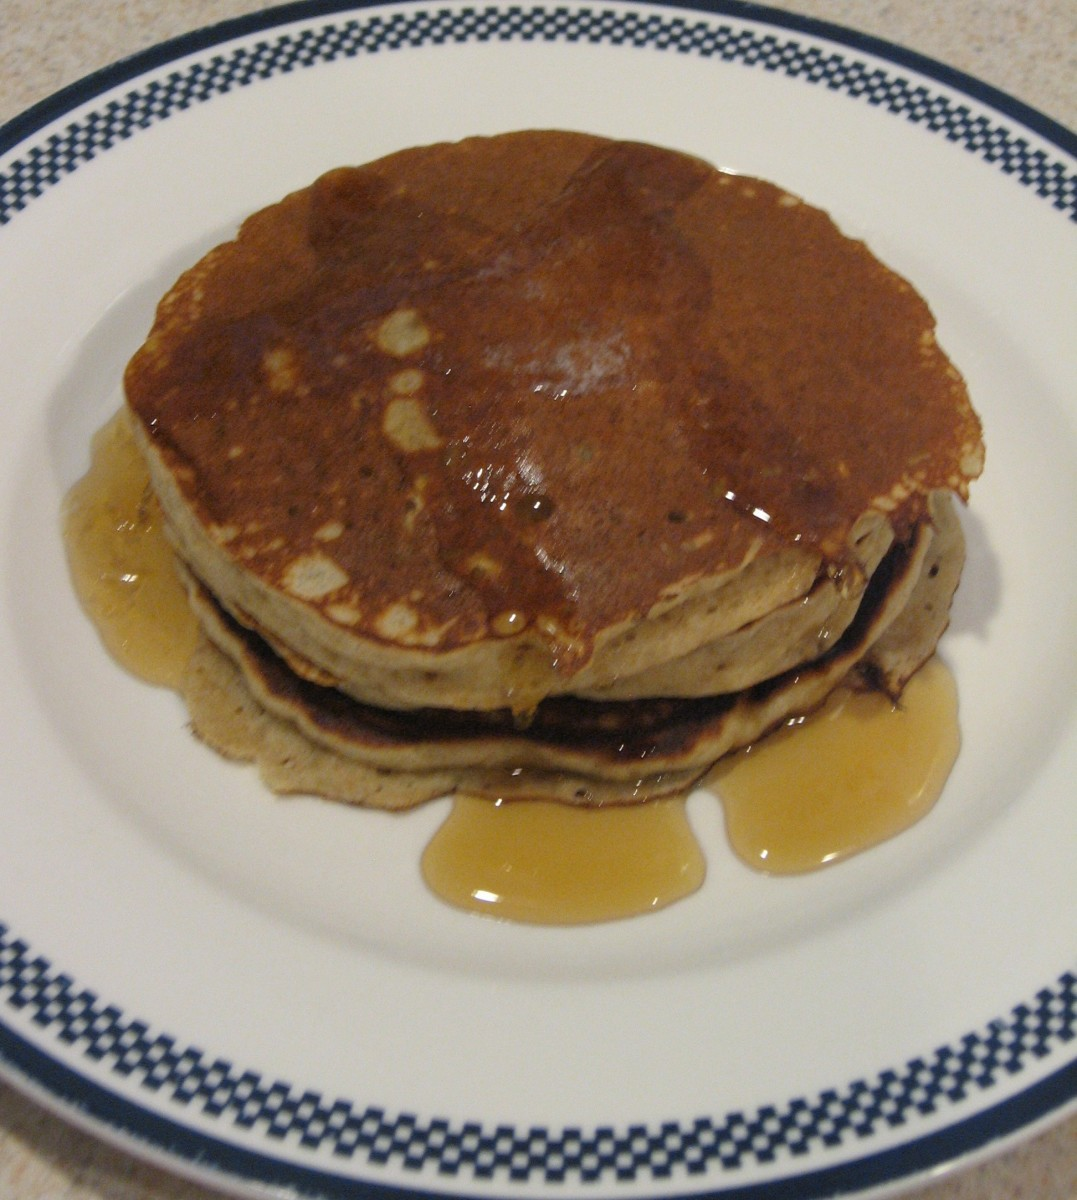 Maple syrup makes an excellent topping for these pancakes.